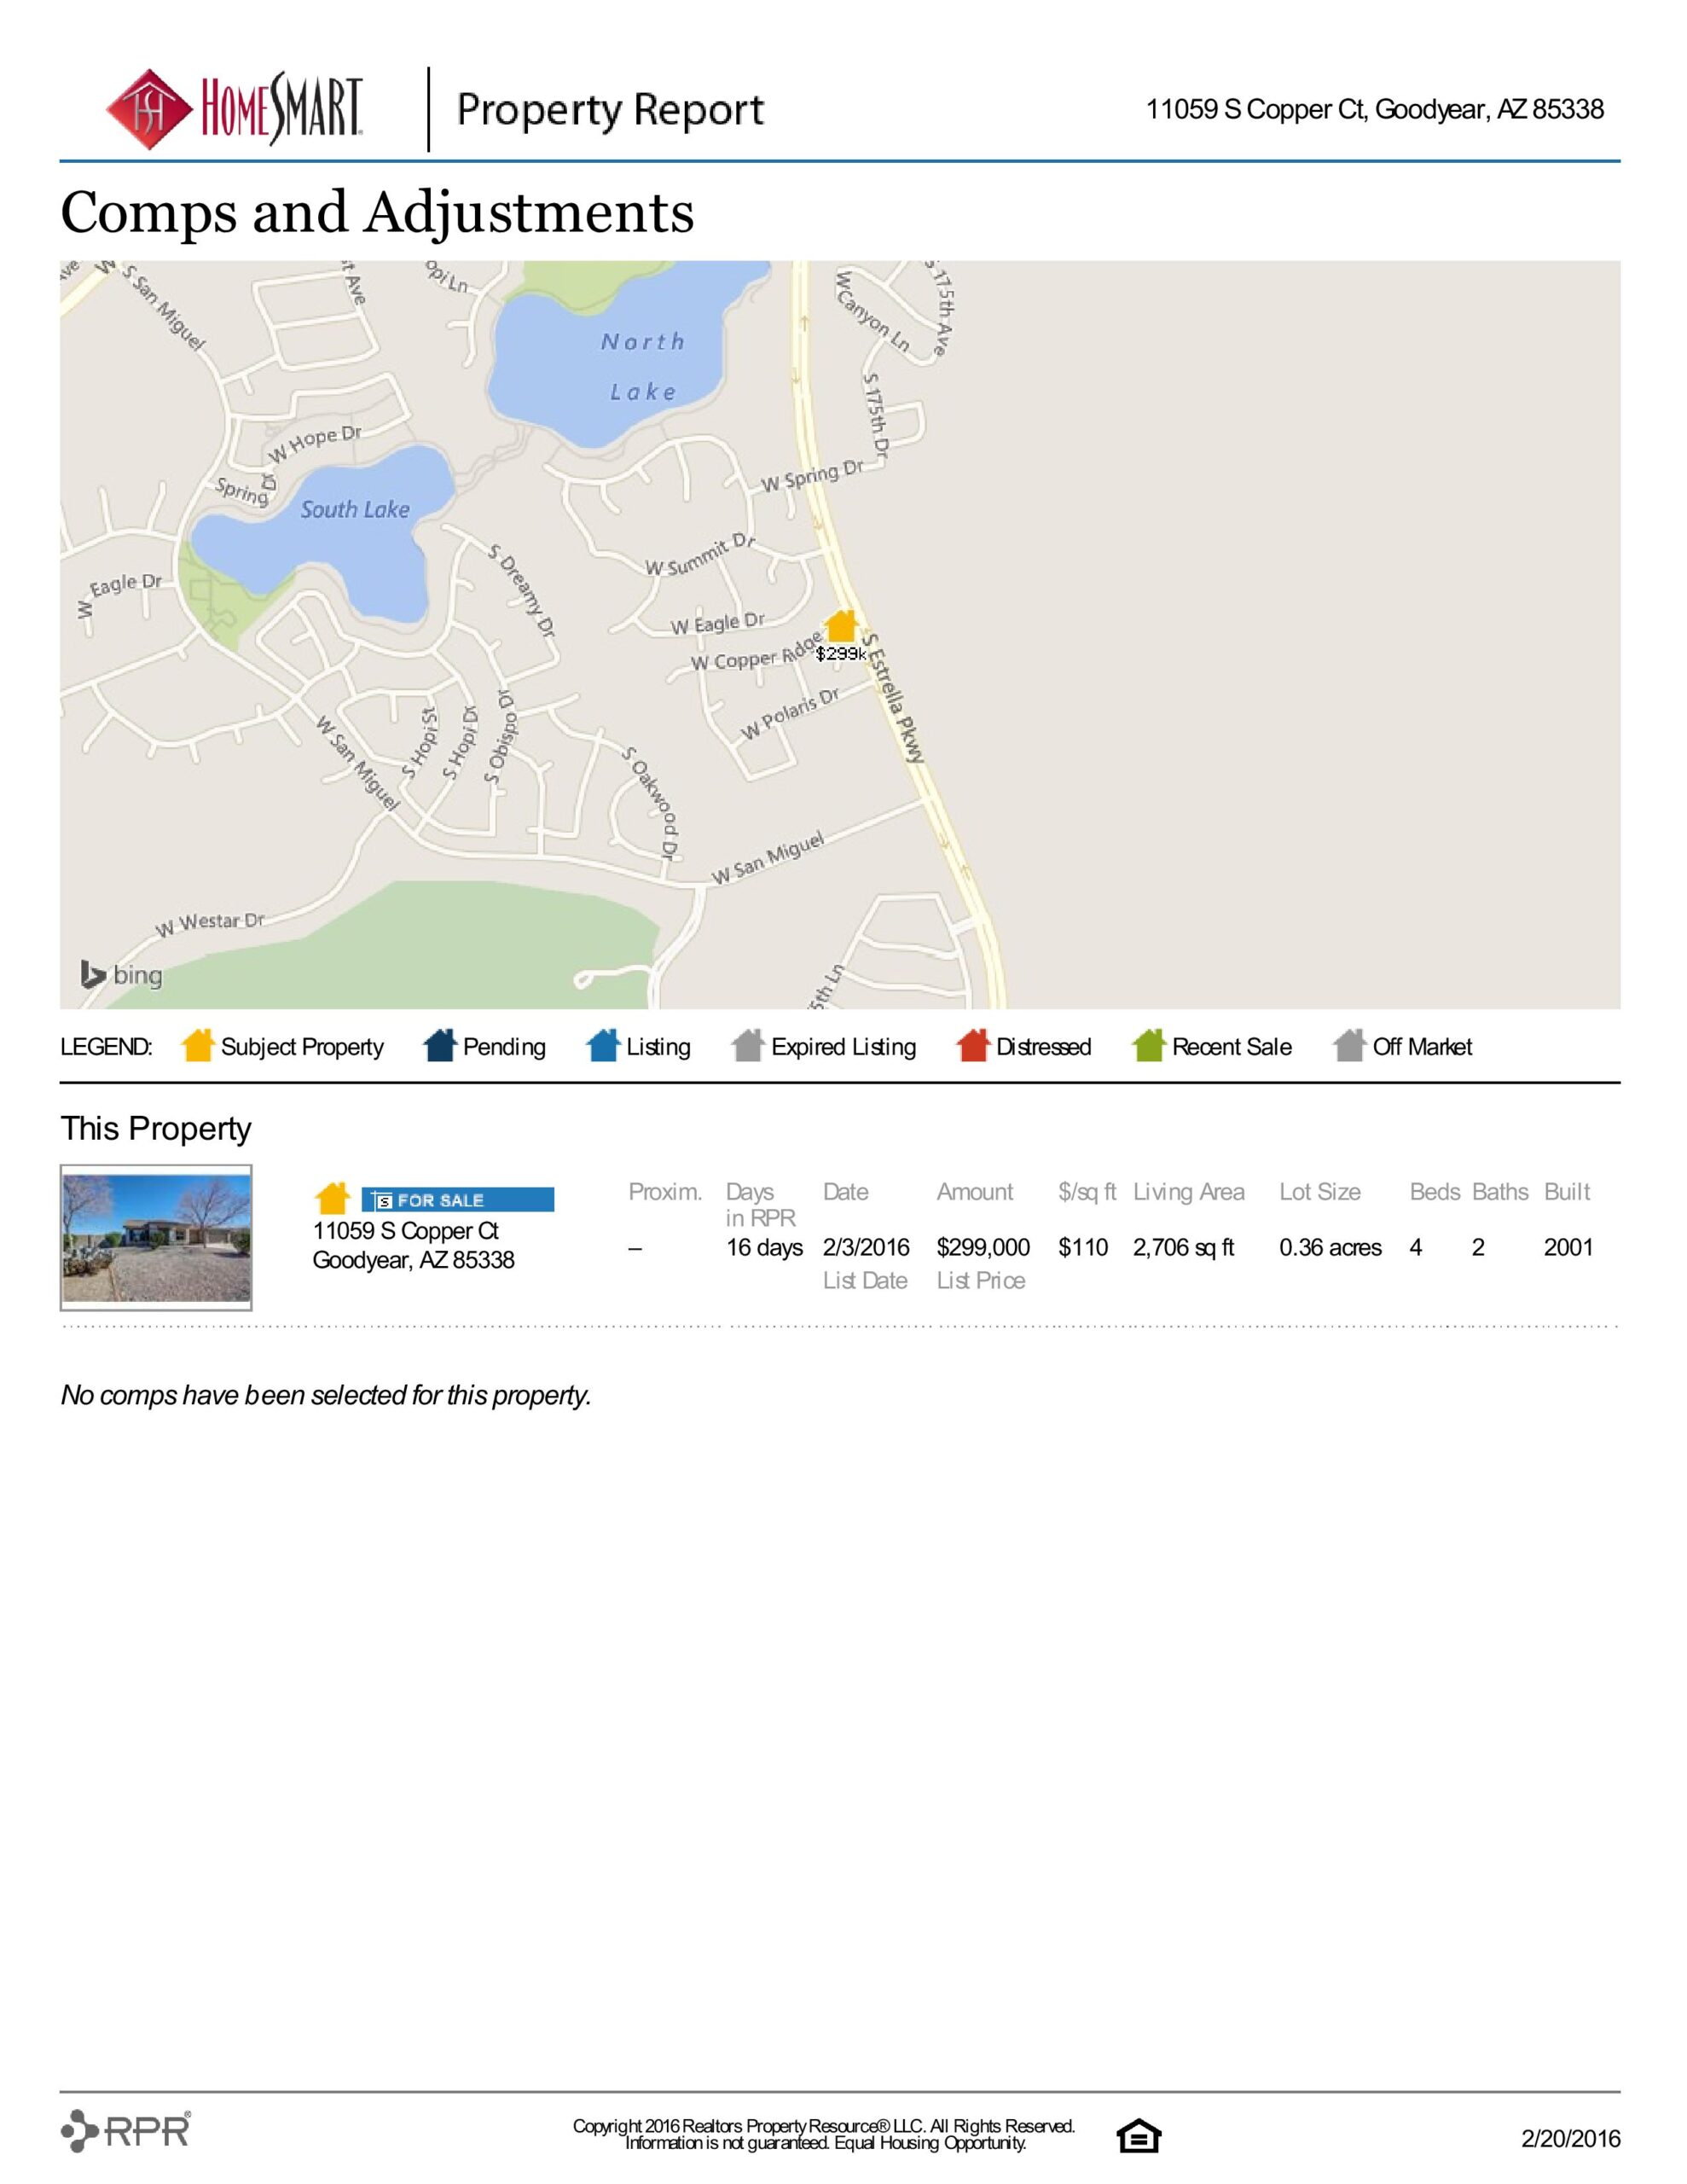 11059 S COPPER CT PROPERTY REPORT-page-010